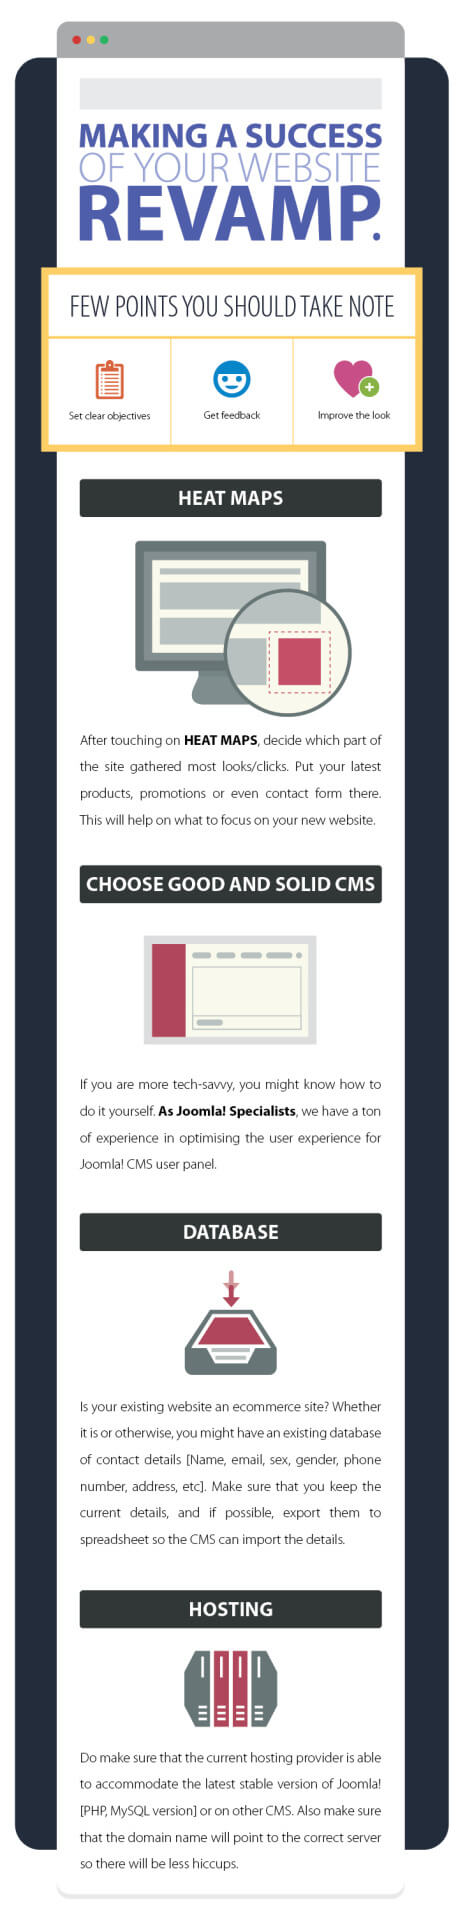 Making a Success of Your Website Revamp